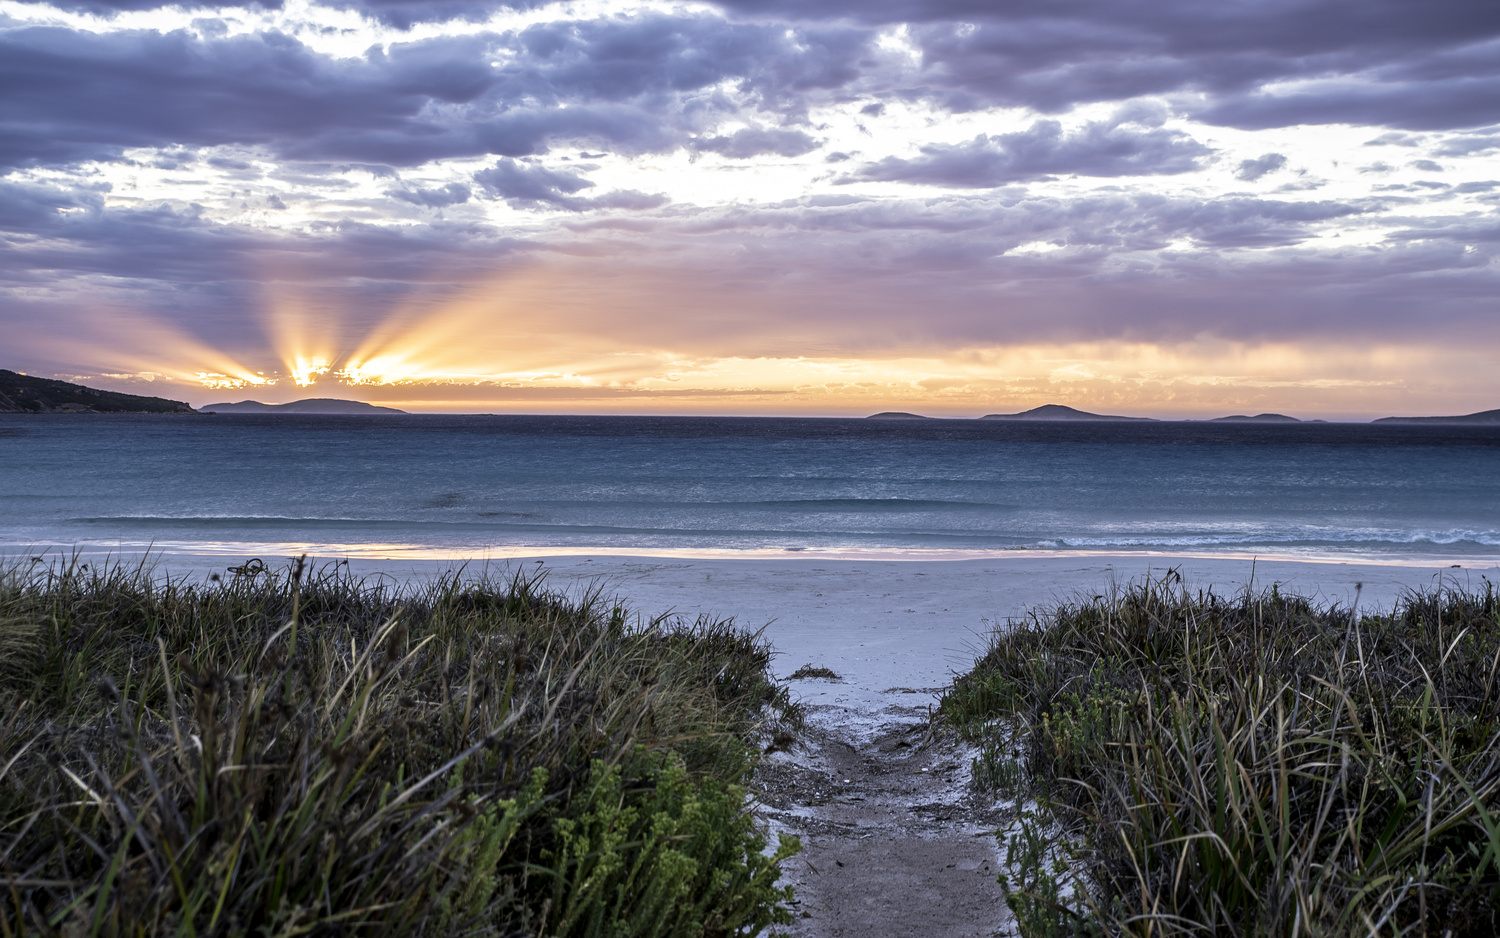 Le Grand beach at sunset by Campbell Sinclair